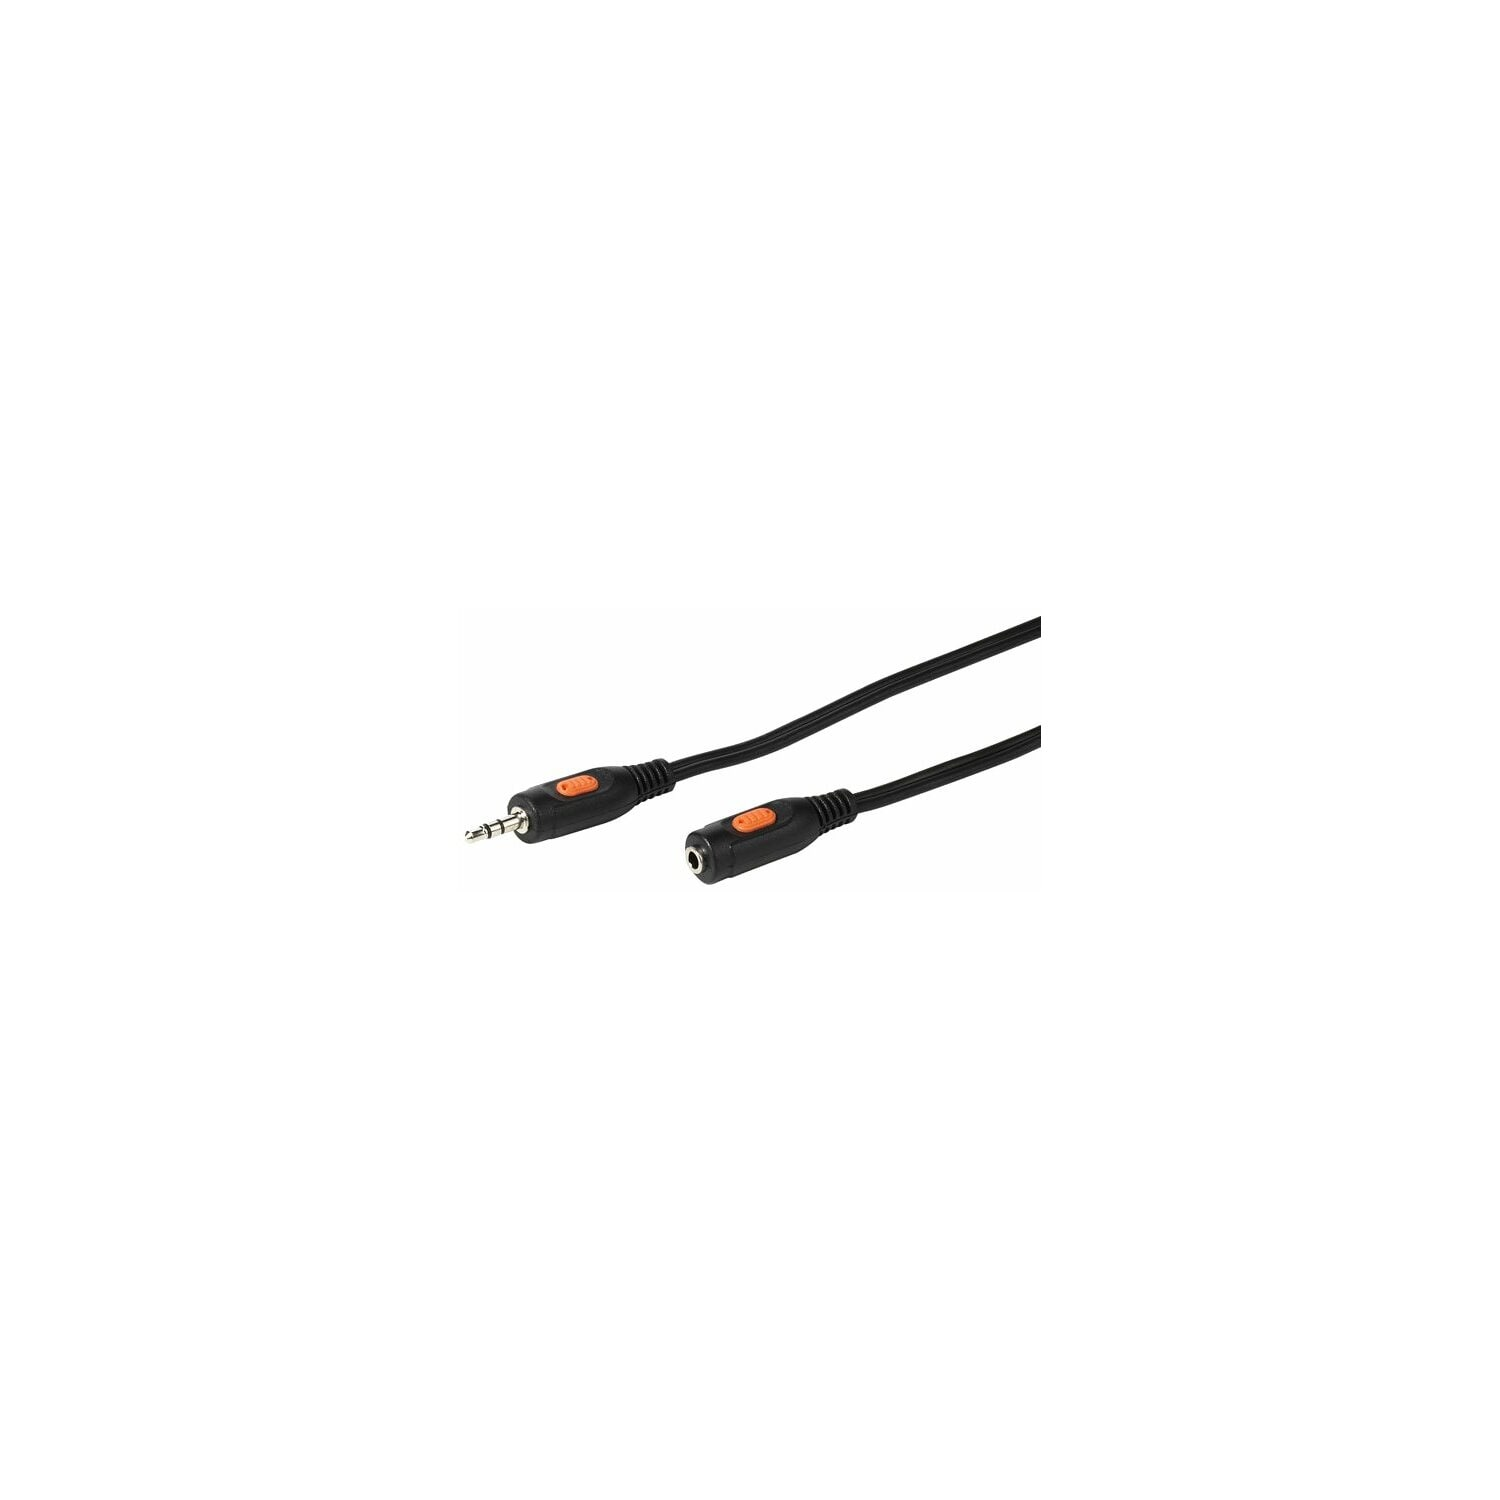 Kabel VIVANCO jack 3.5mm (wtyk) - jack 3.5mm (gniazdo) 10m